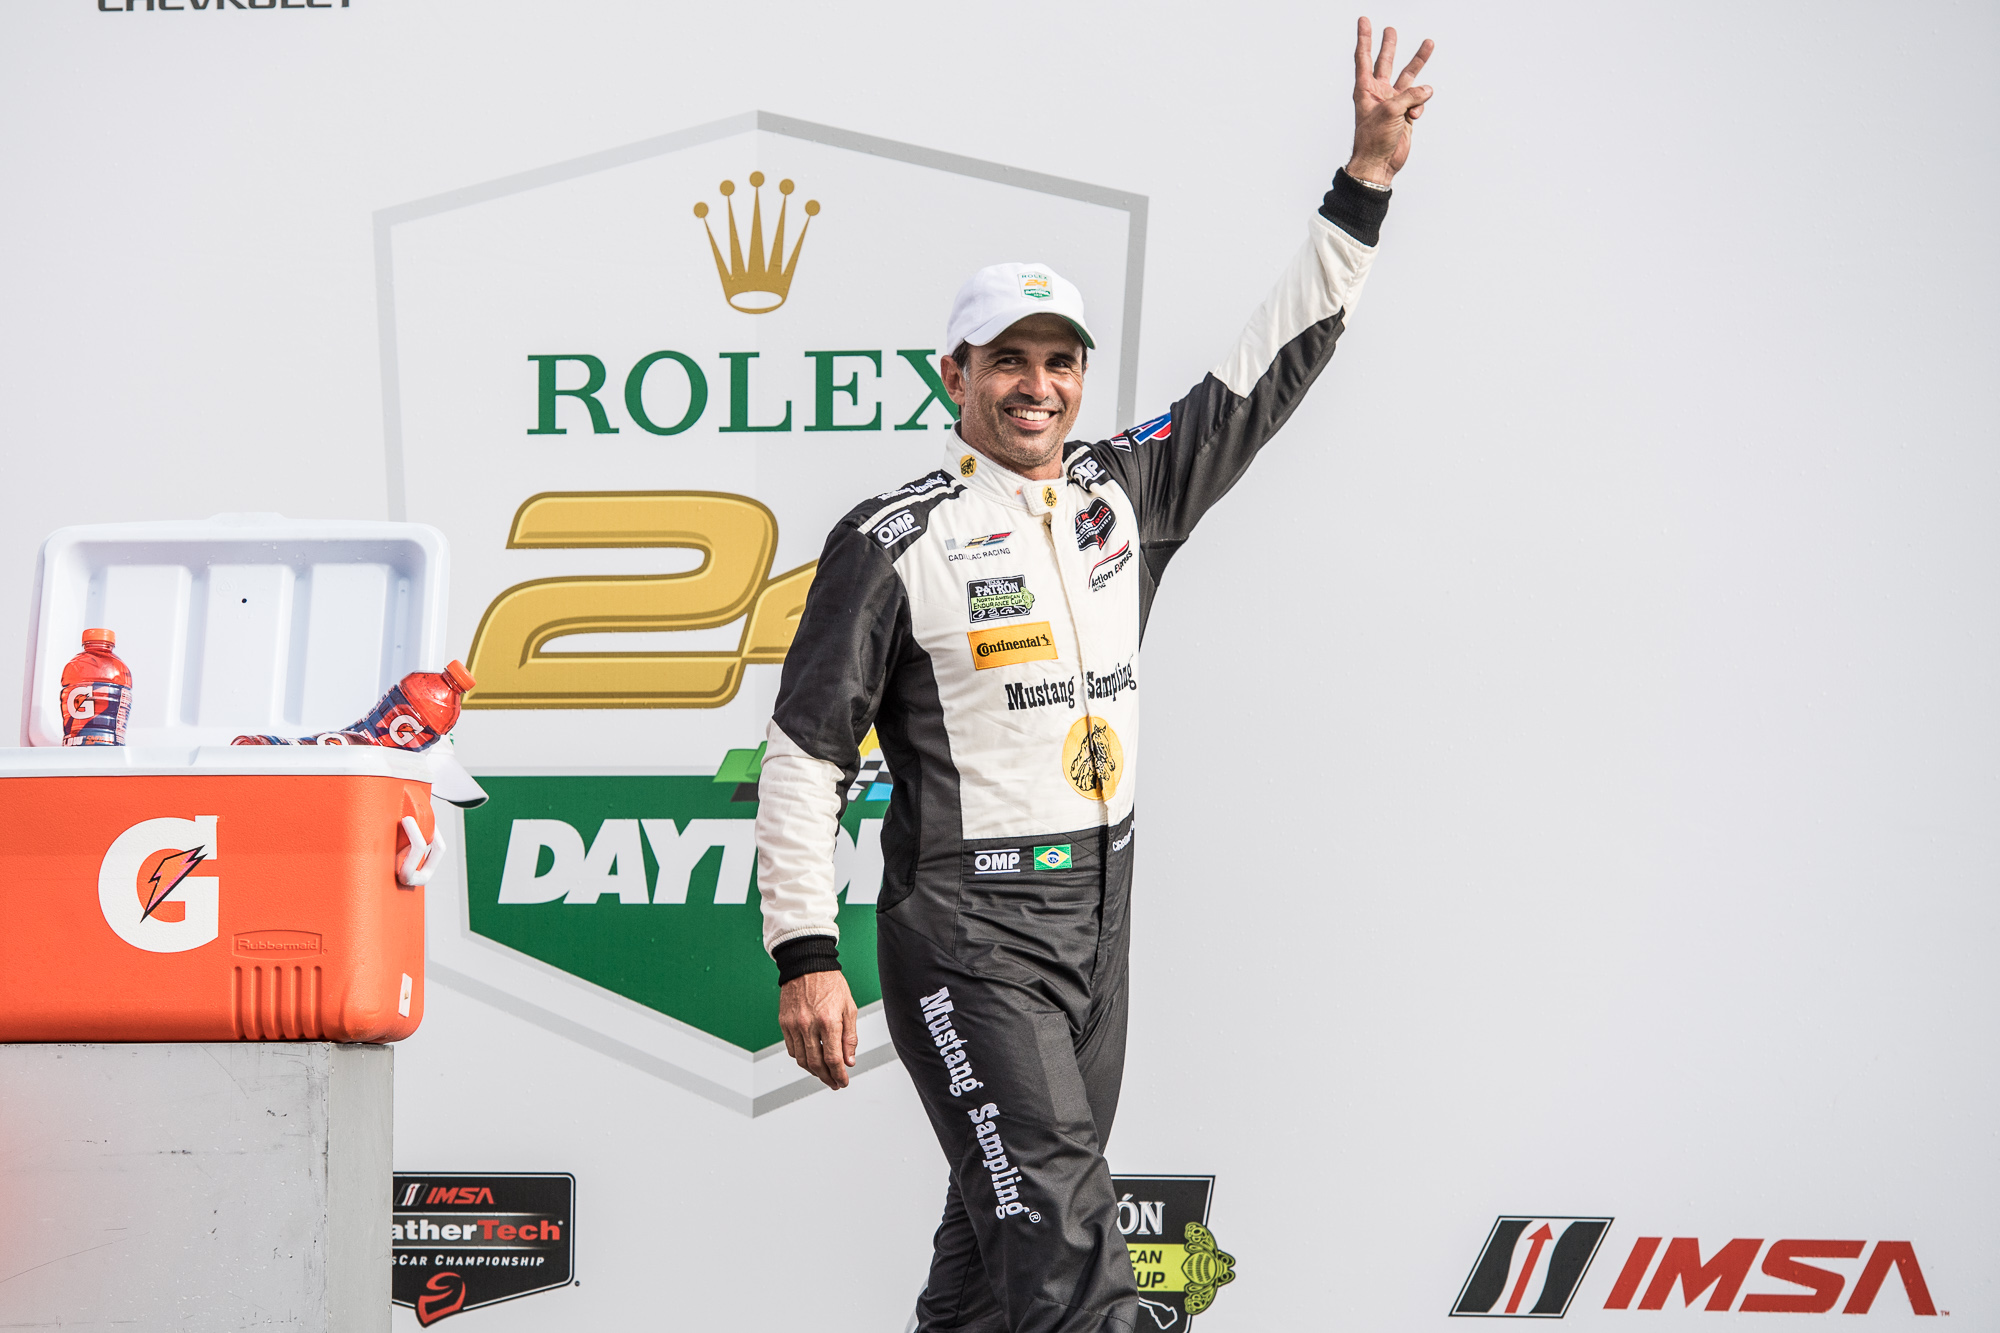 Photo of IMSA – Christian Fittipaldi vence 24 Horas de Daytona pela 3ª vez em dobradinha da Action Express